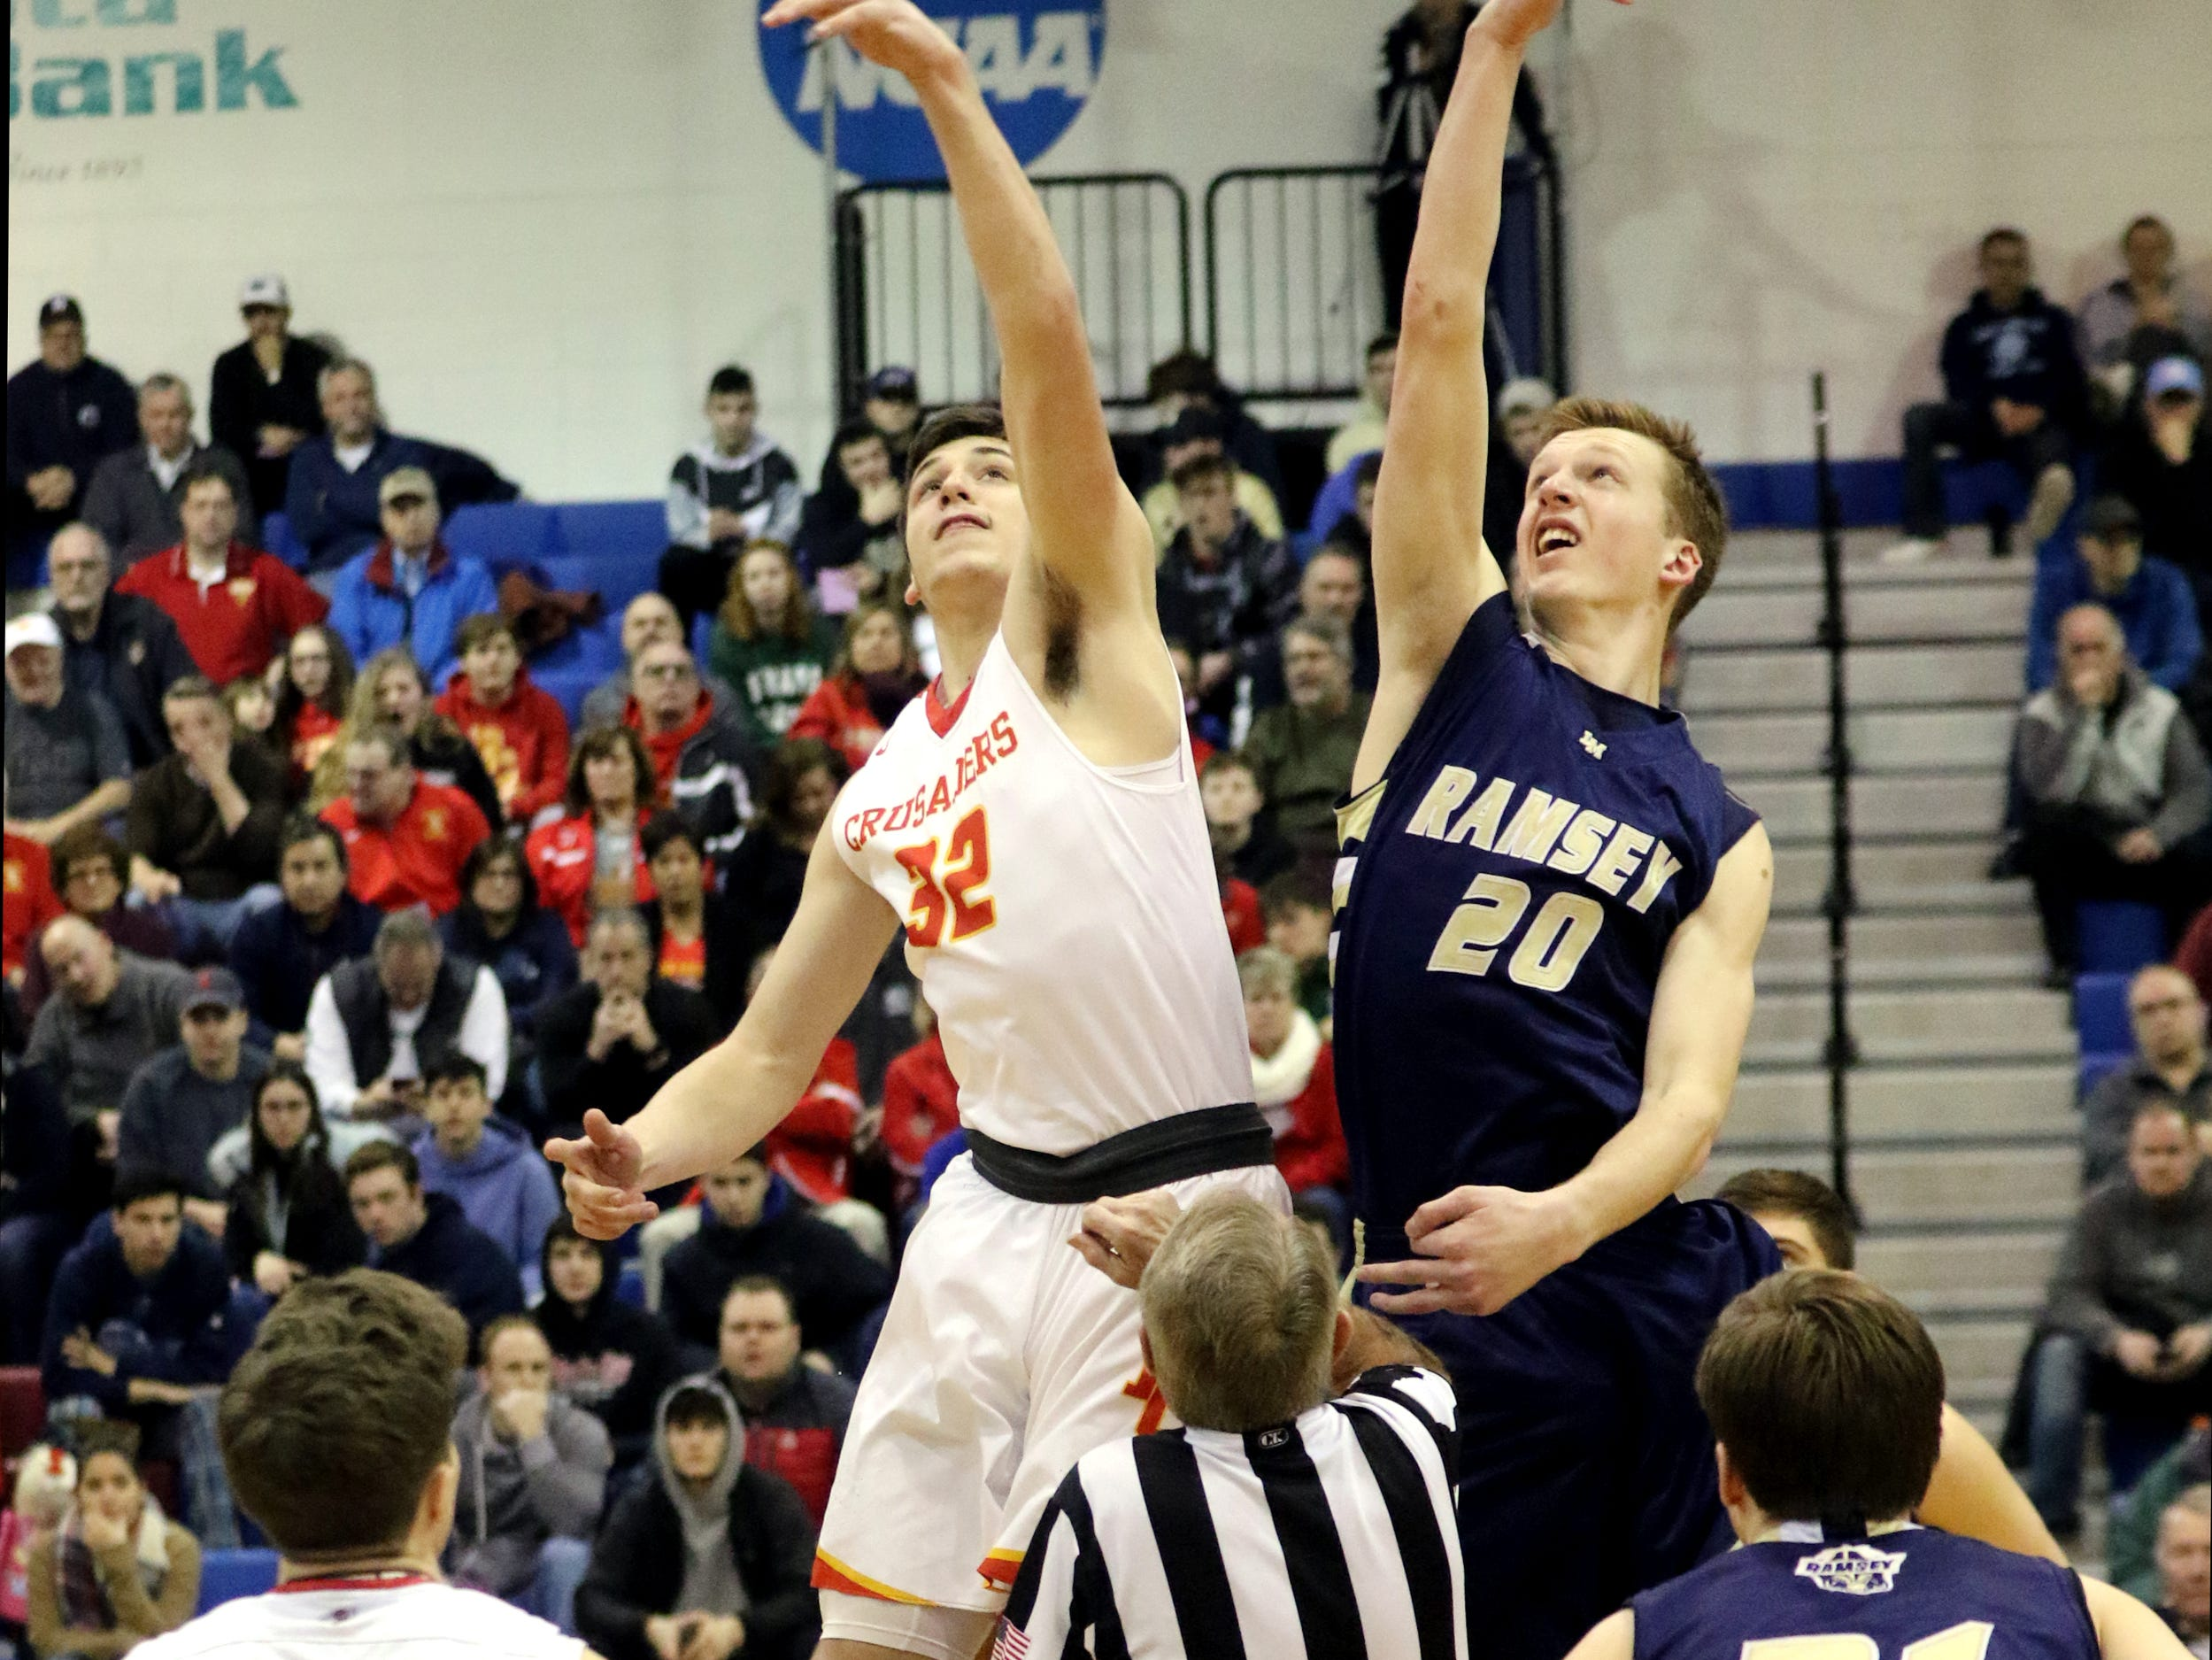 Zach Freemantle, of Bergen Catholic, wins the tip-off against Sean Hansen, of Ramsey.  Sunday, February 10, 2019